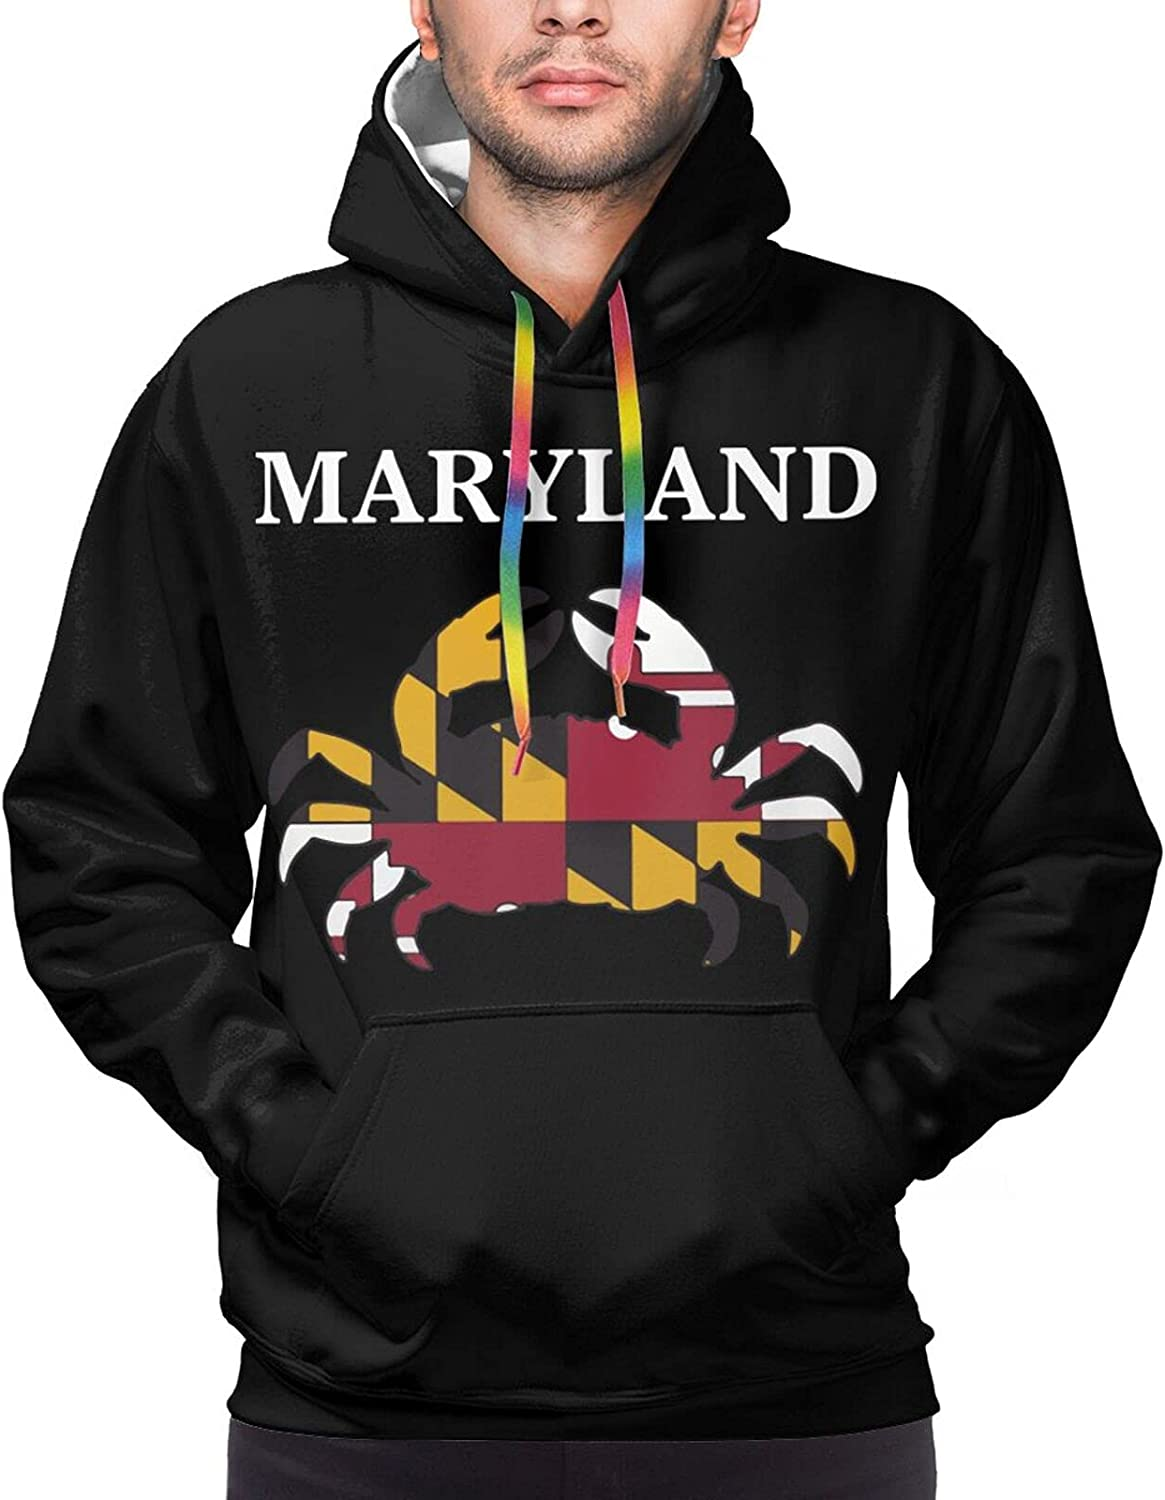 Hoodie For Men Women Unisex Maryland State Maryland Flag Crab Pullover Hooded Sports Sweatshirt